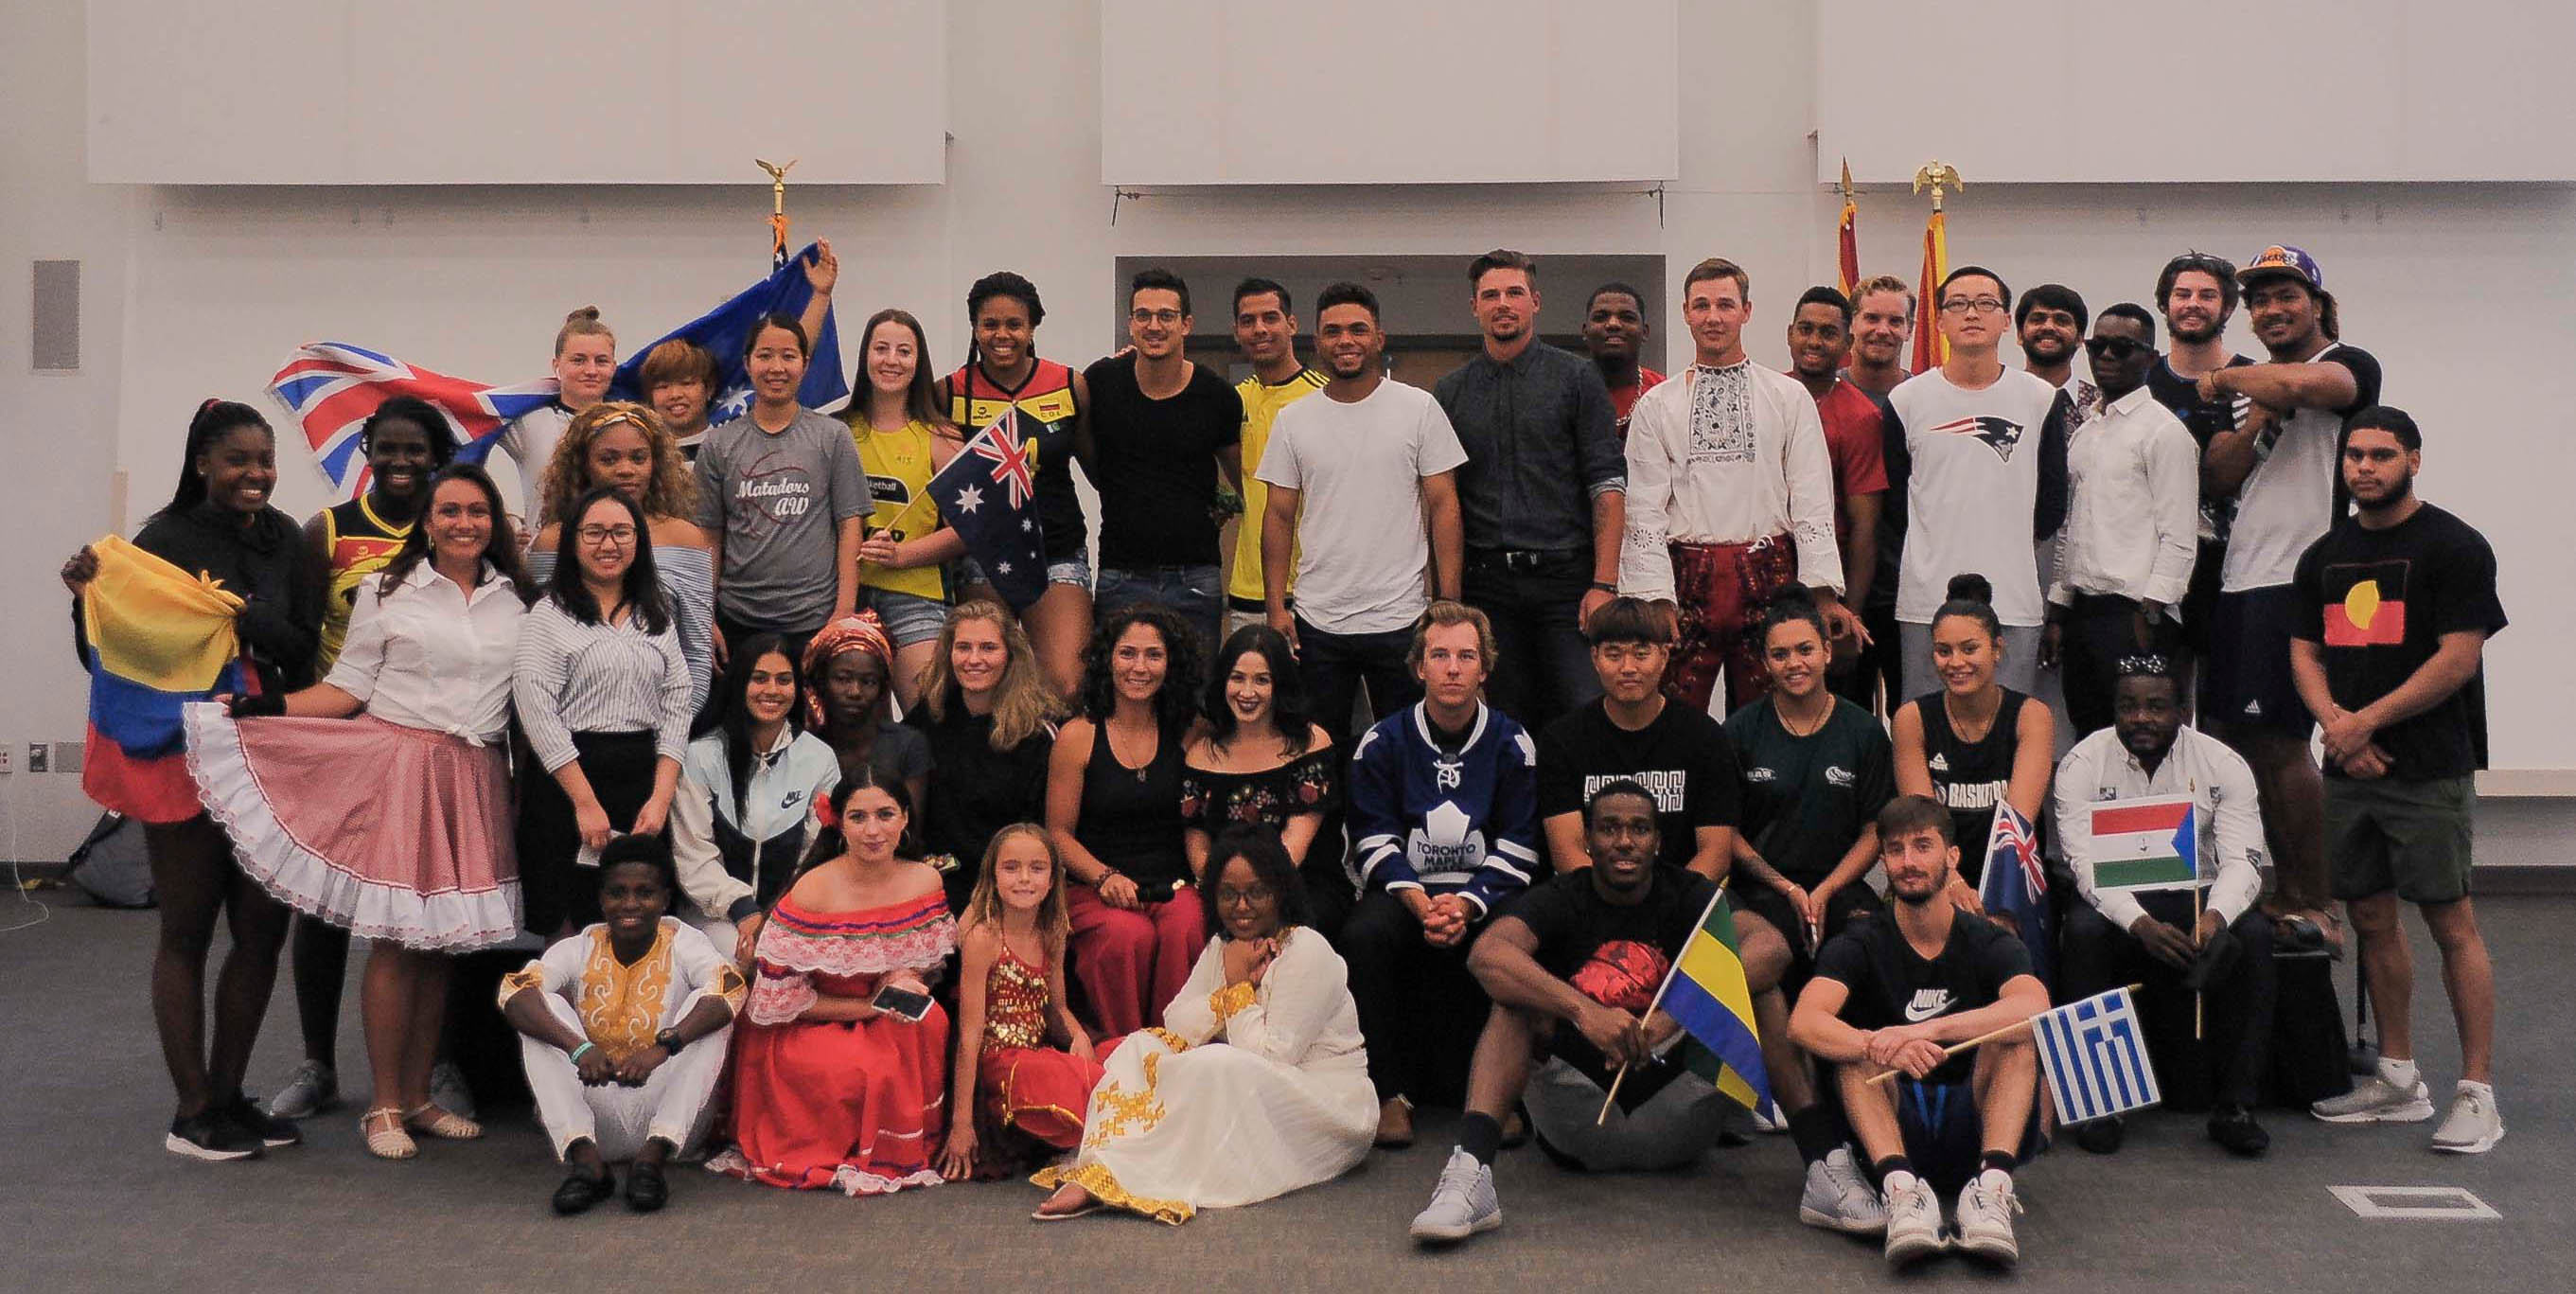 Large group of participants in various outfits from different cultures